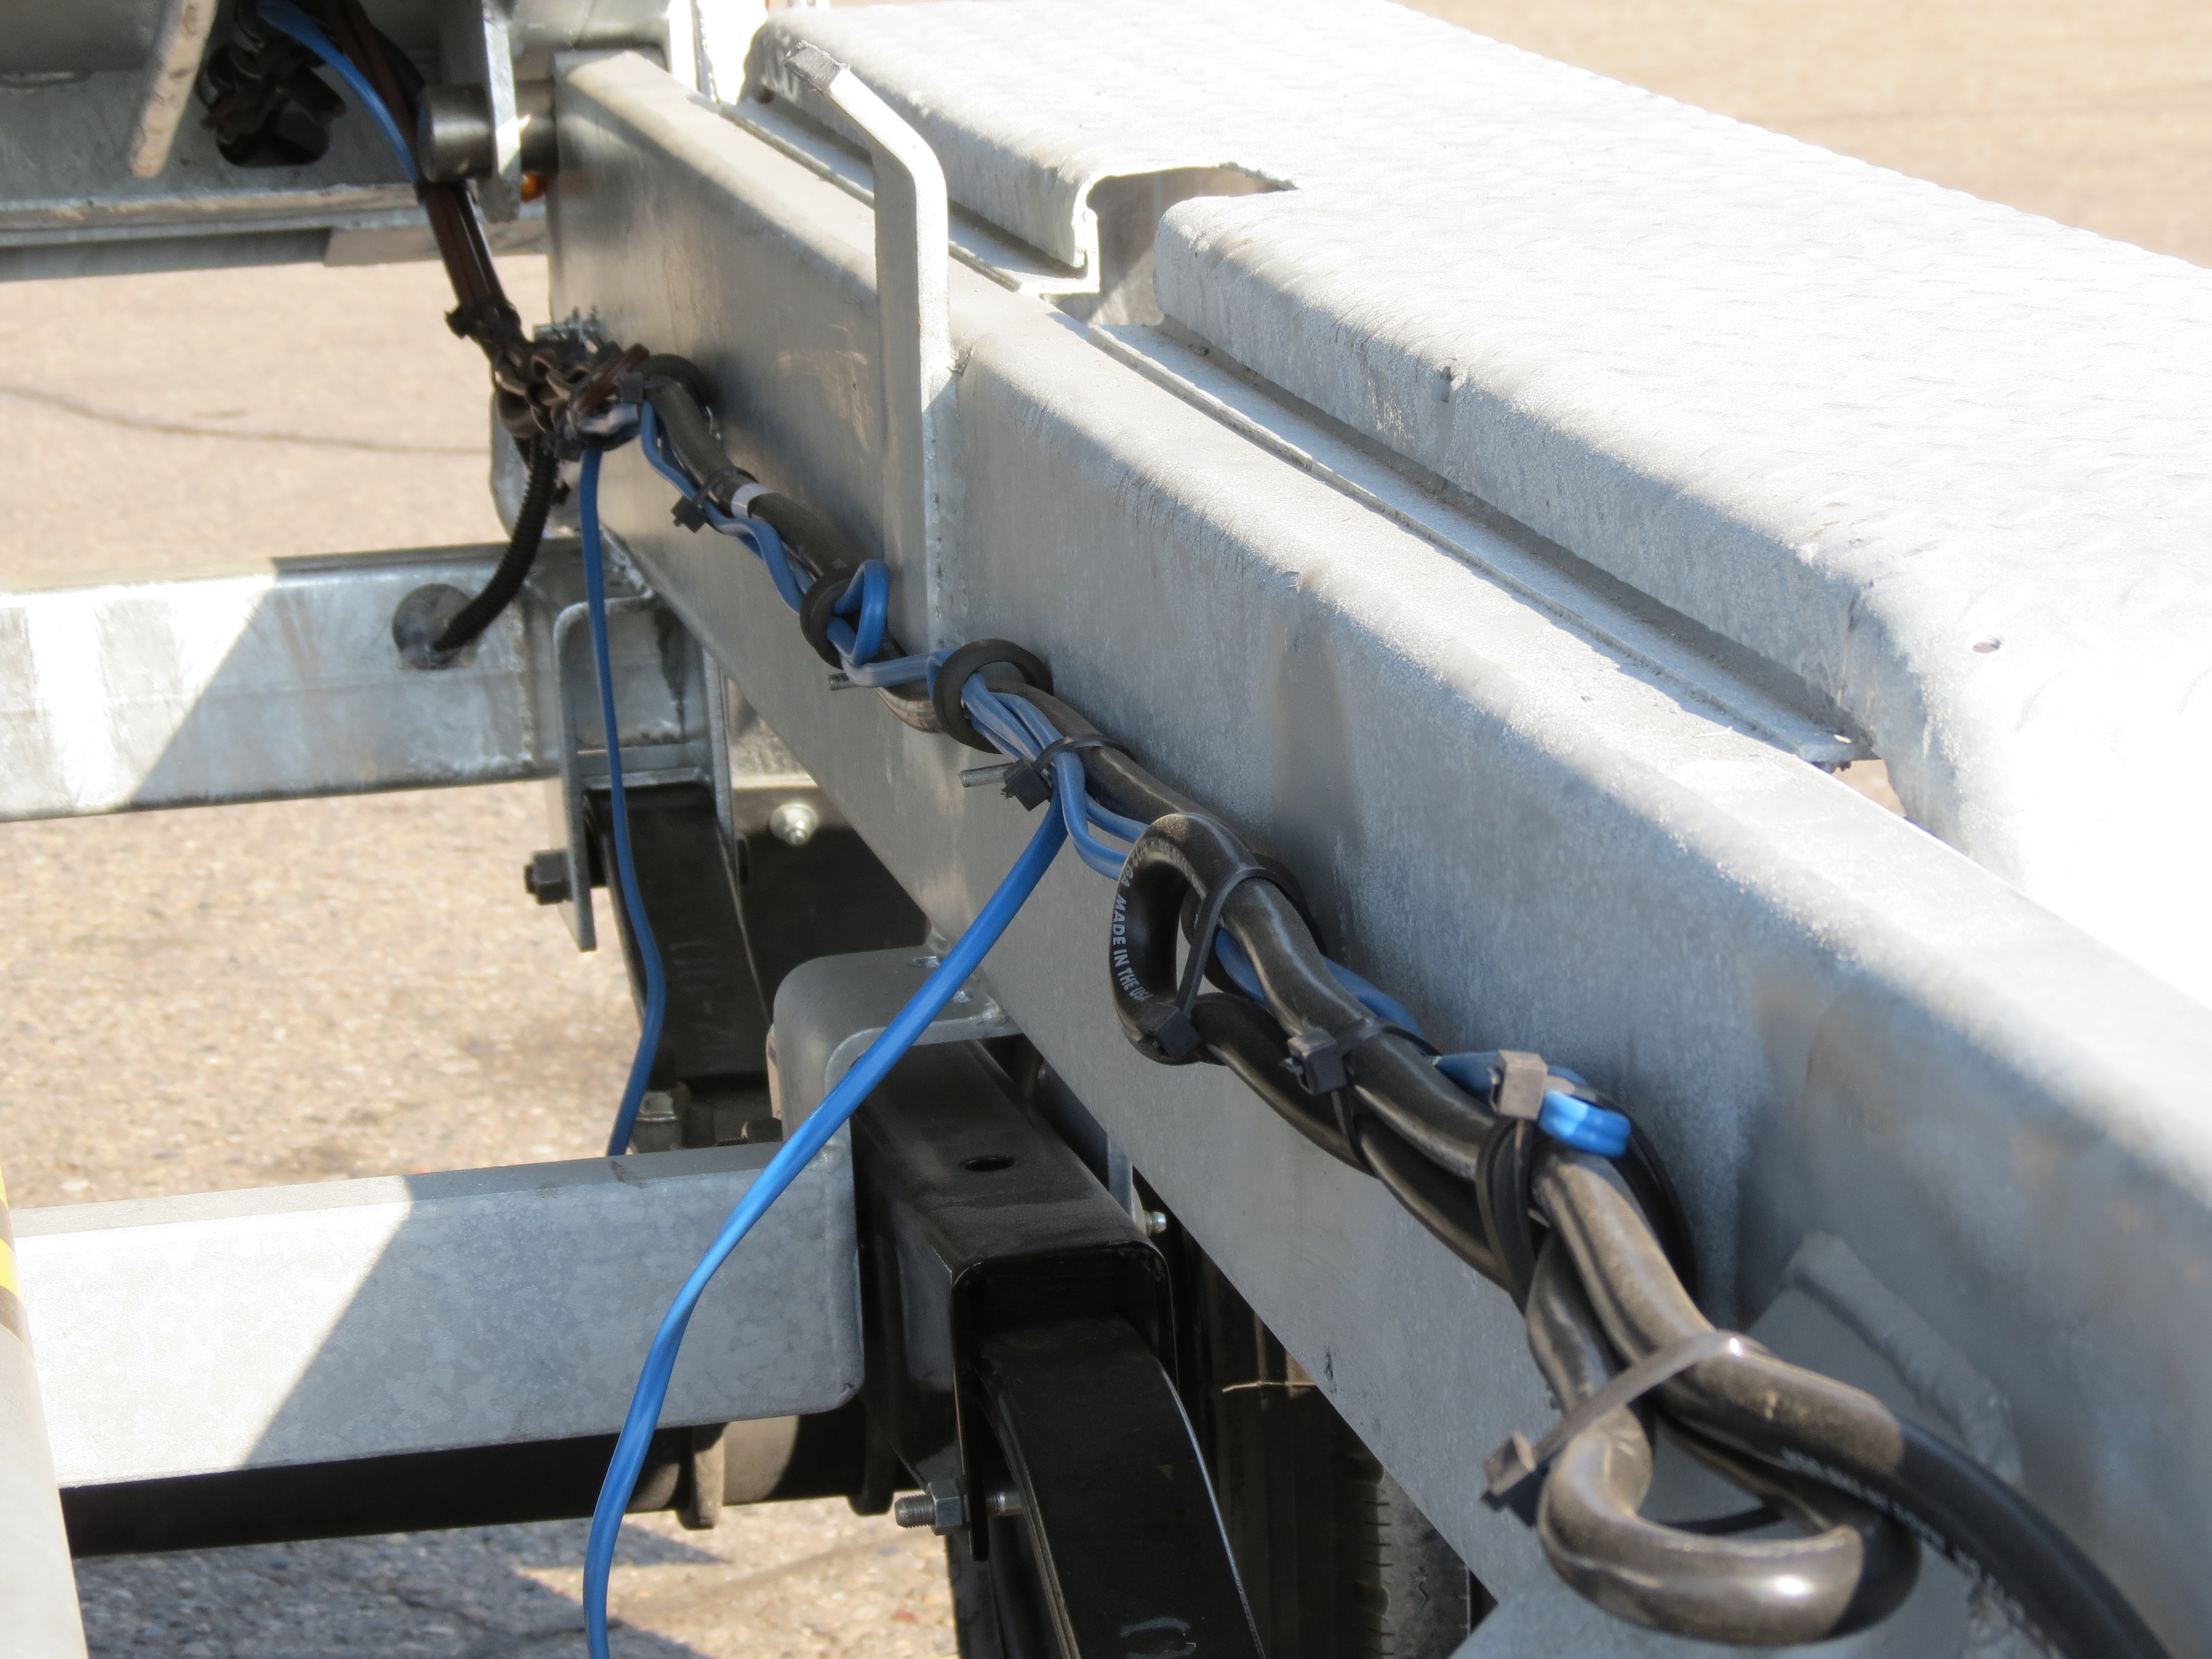 Wire Trailer Wiring Diagram On Utility Trailer Abs Wiring Diagram